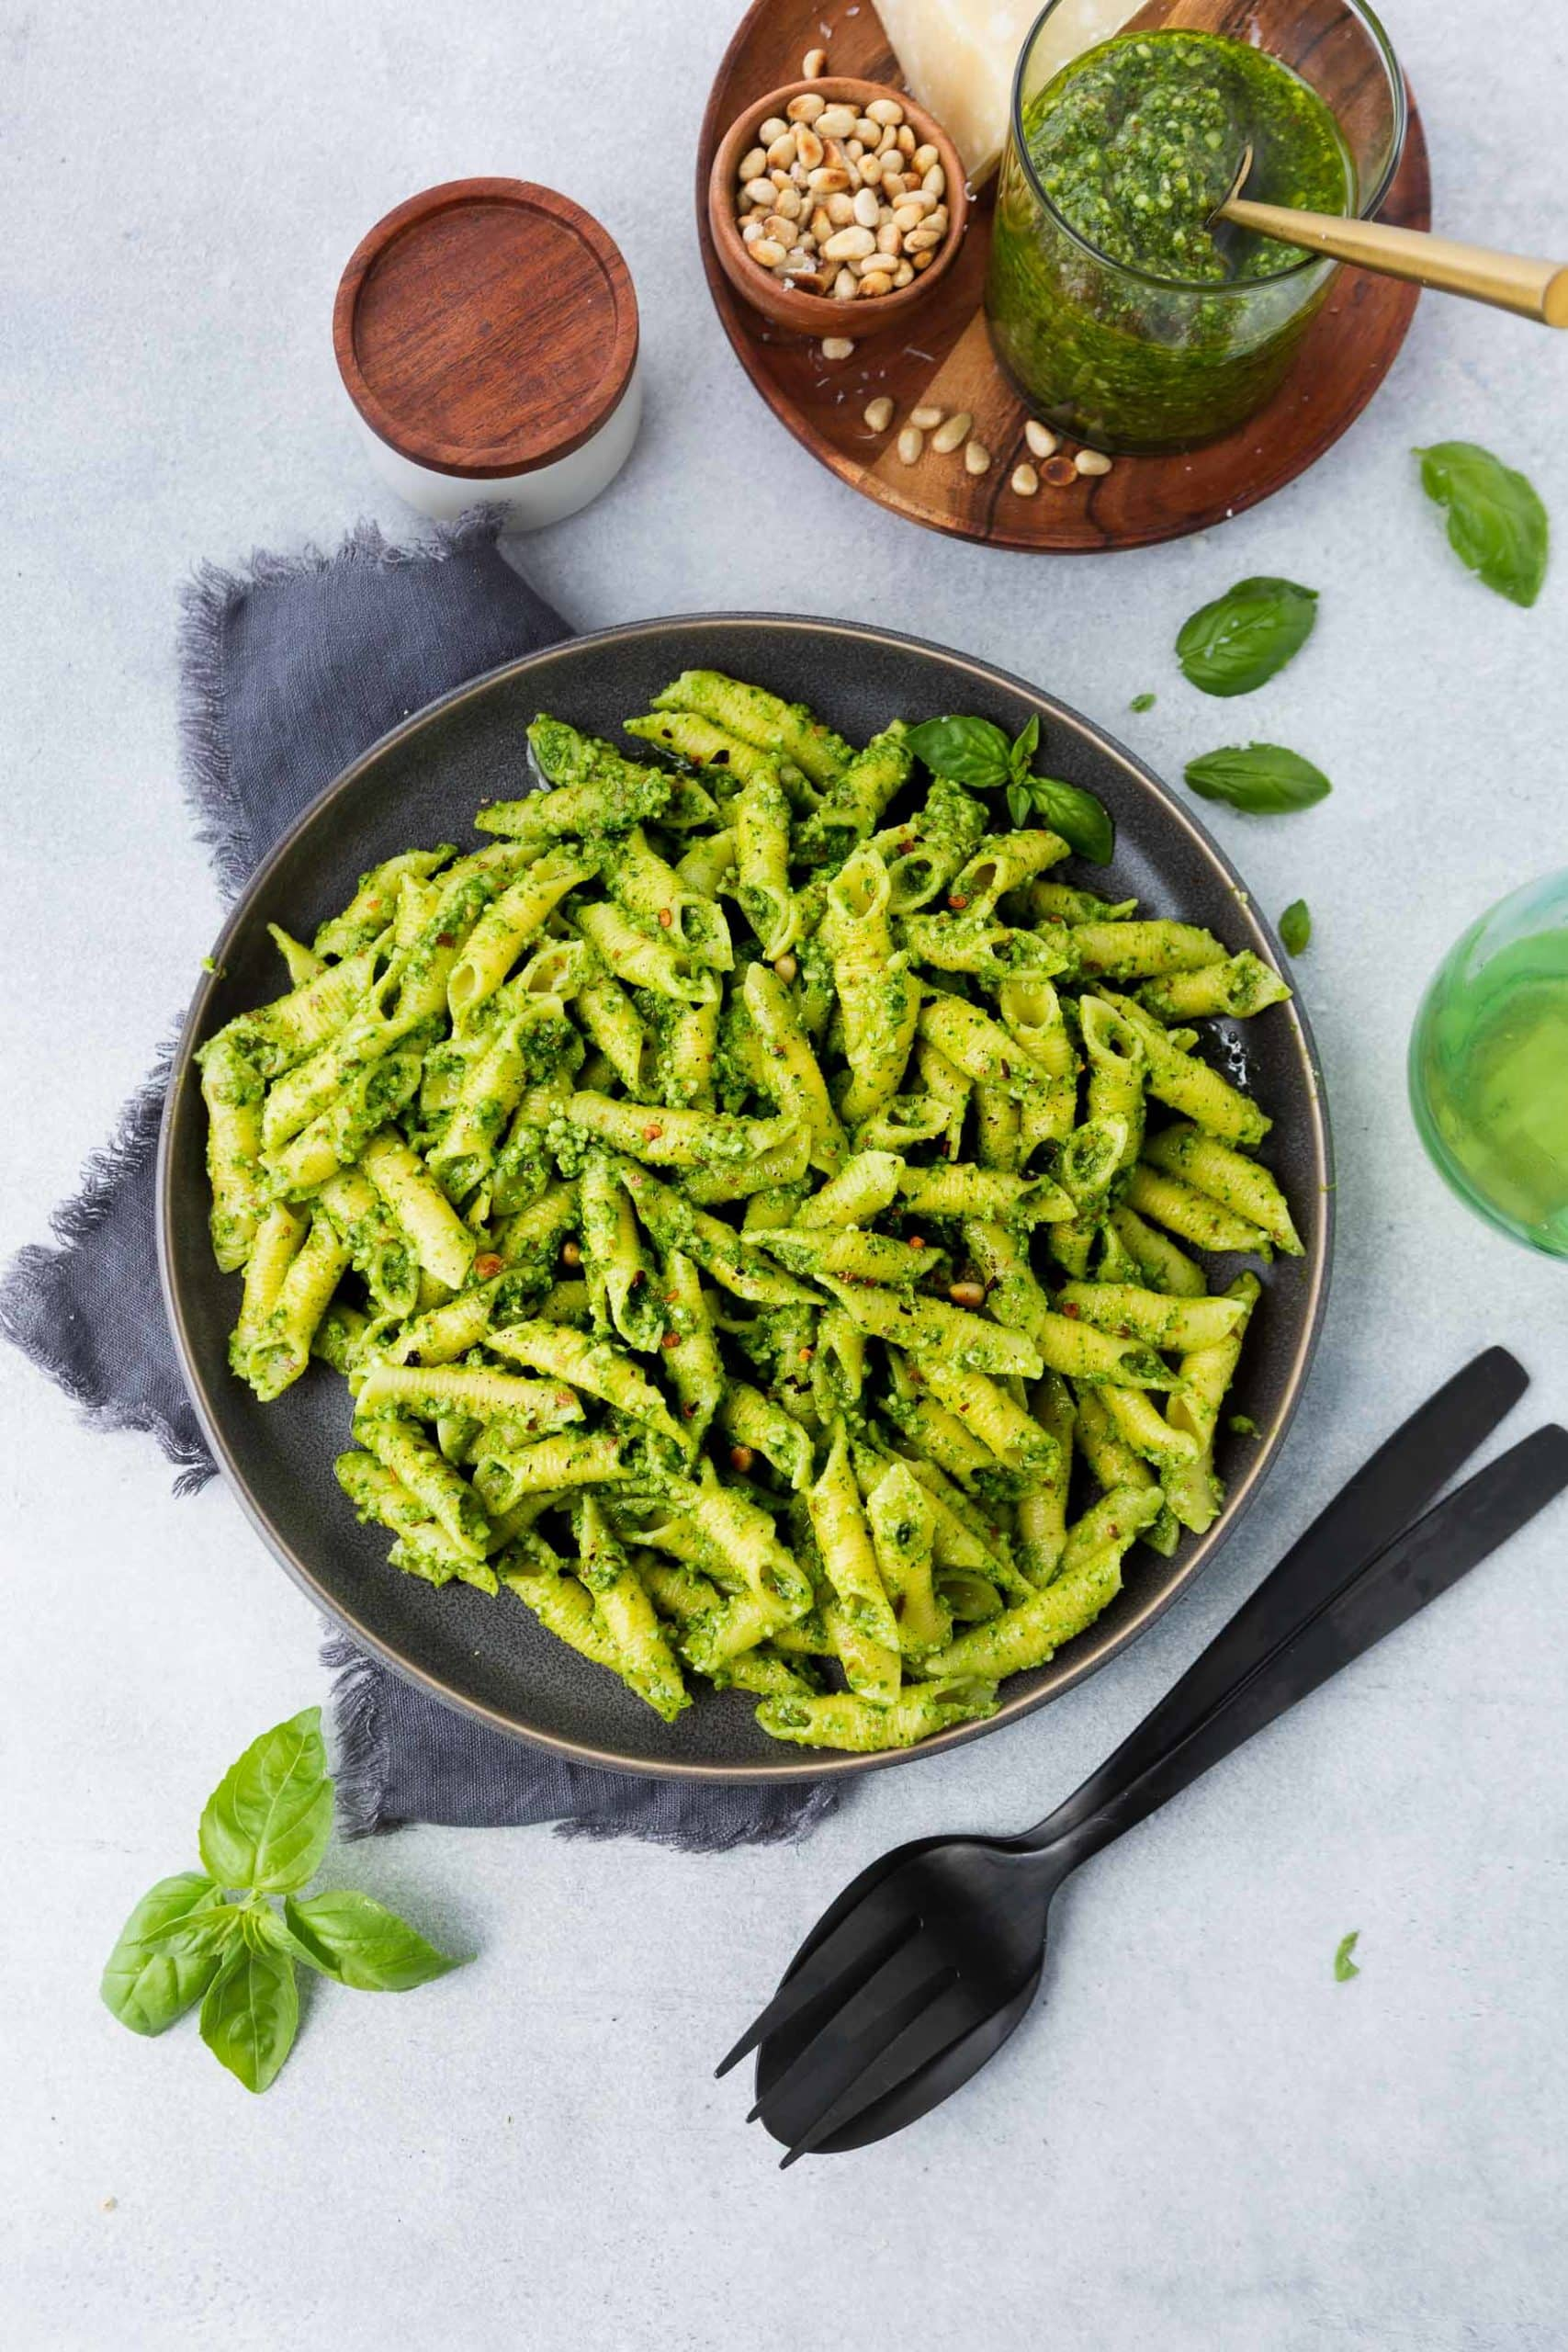 a photo of a plate of cooked penne pasta covered in bright green pesto with a cup of fresh pesto next to it and a jar of pine nuts on the side